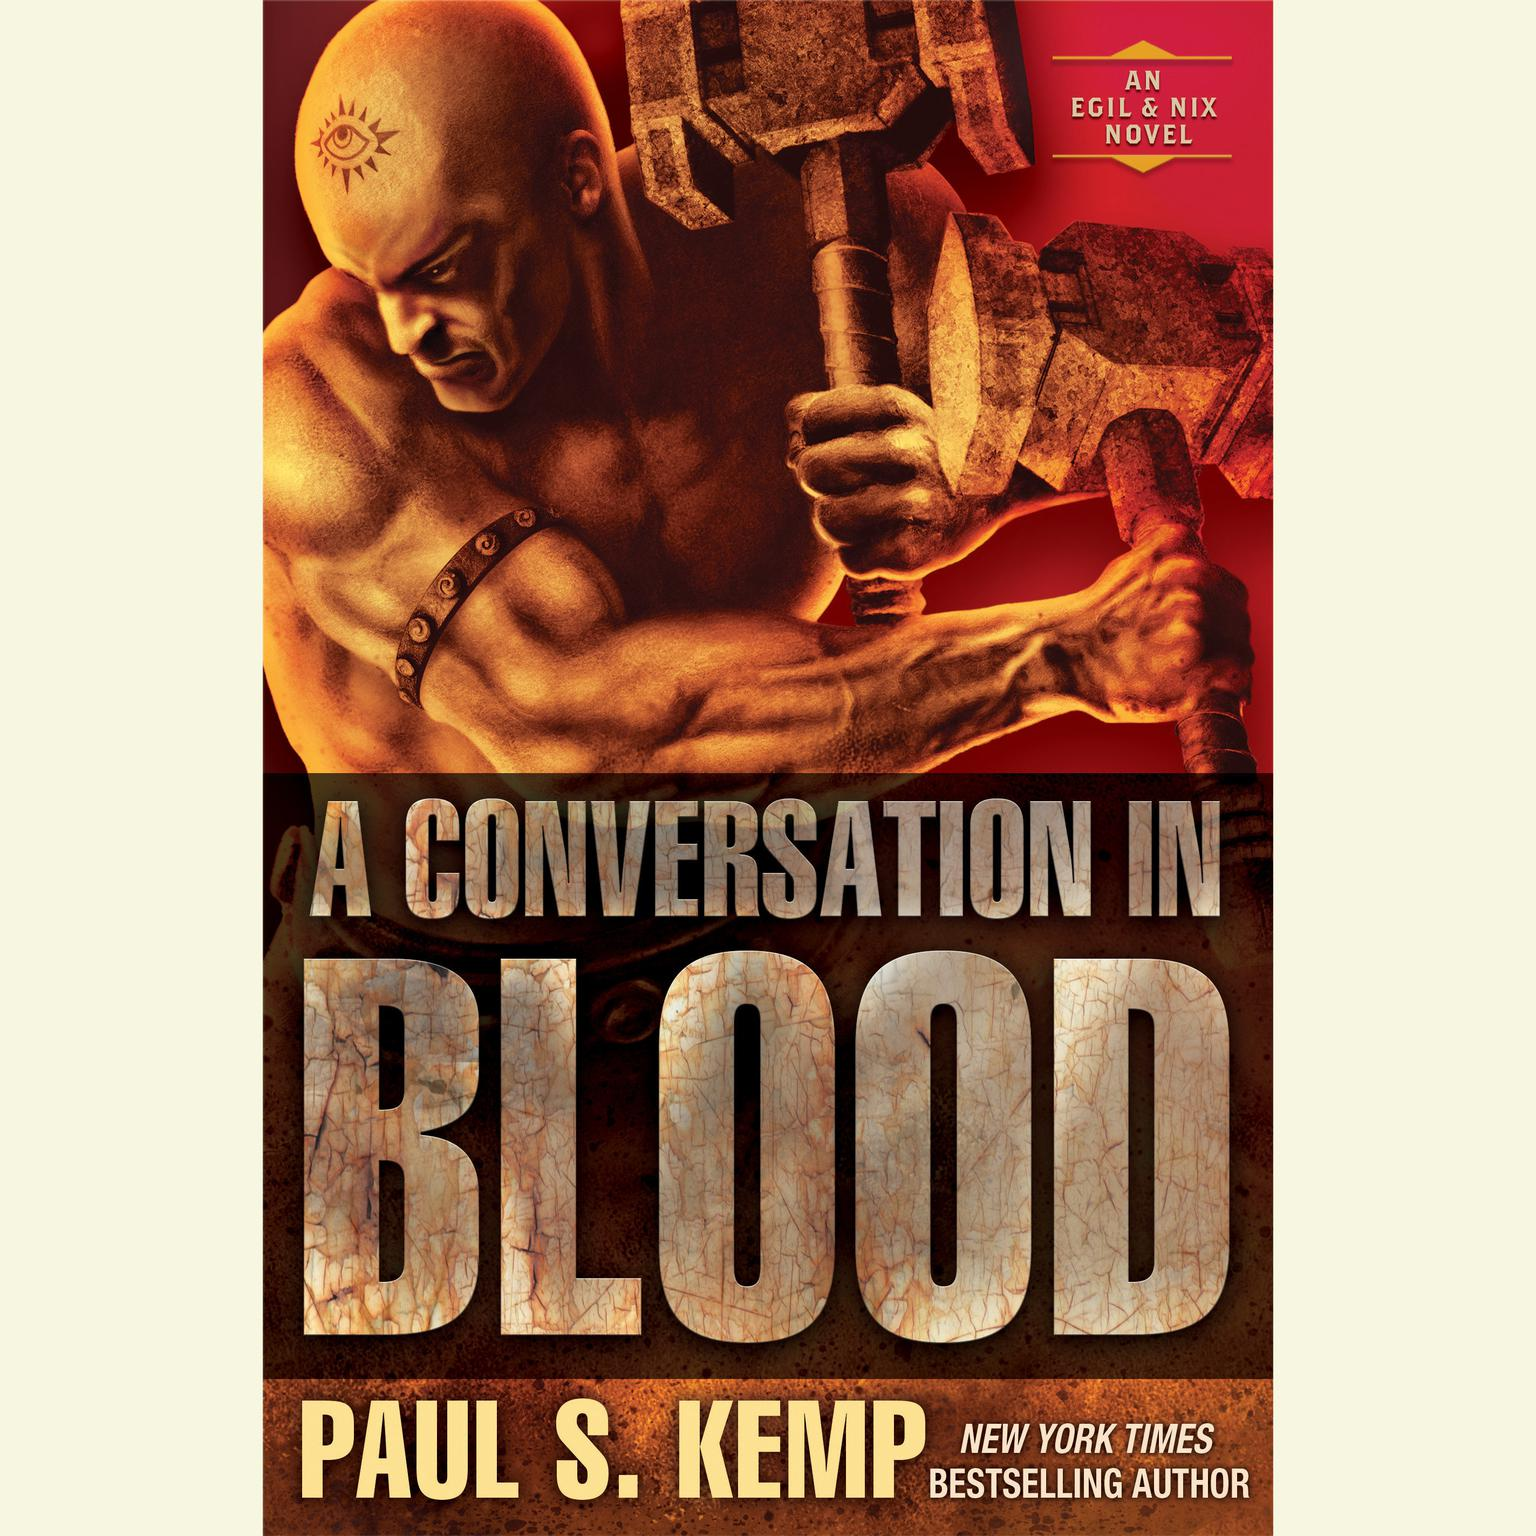 Printable A Conversation in Blood: An Egil & Nix Novel Audiobook Cover Art